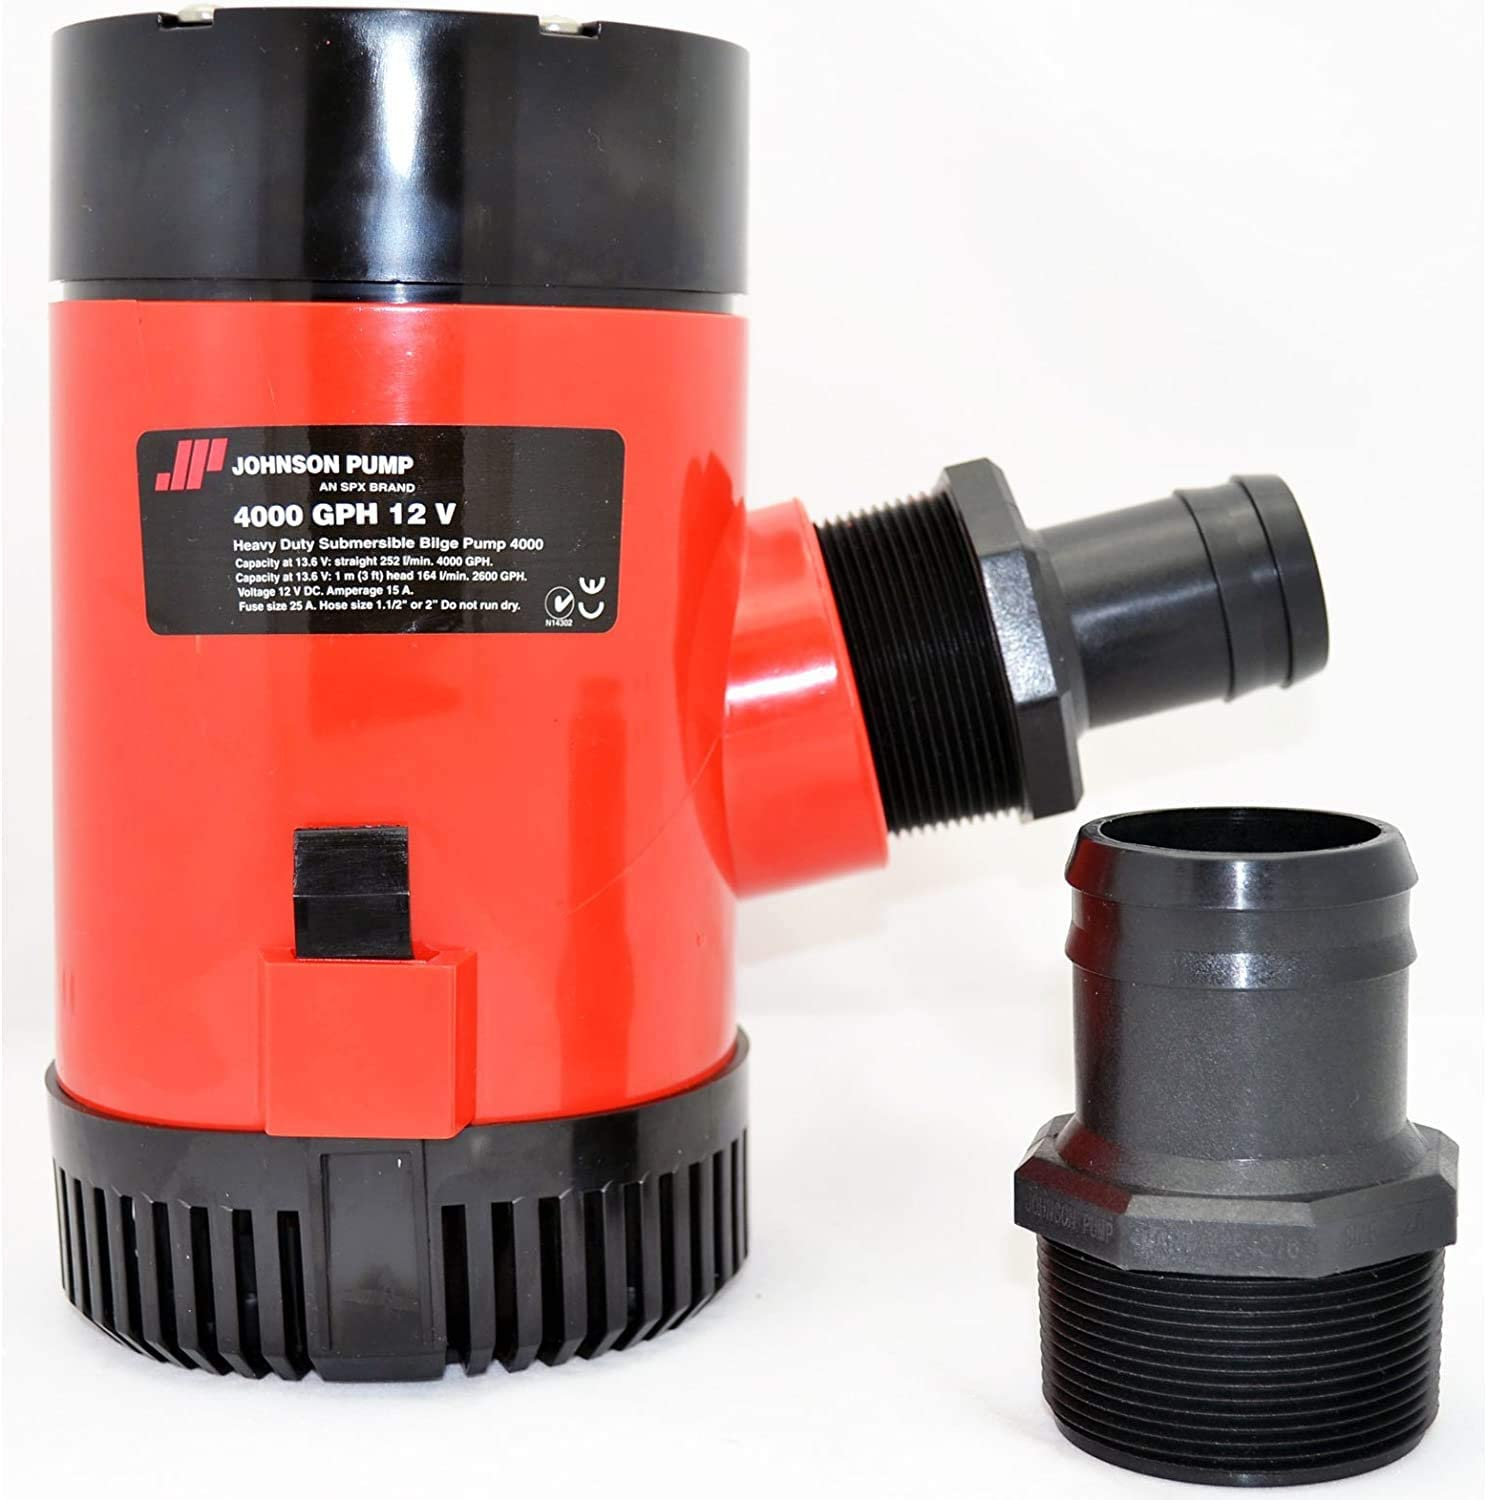 Johnson Pumps 40004 4000 GPH 12V Outlet ☆ Free Shipping Pack Cheap mail order sales of 1 Bilge Pump